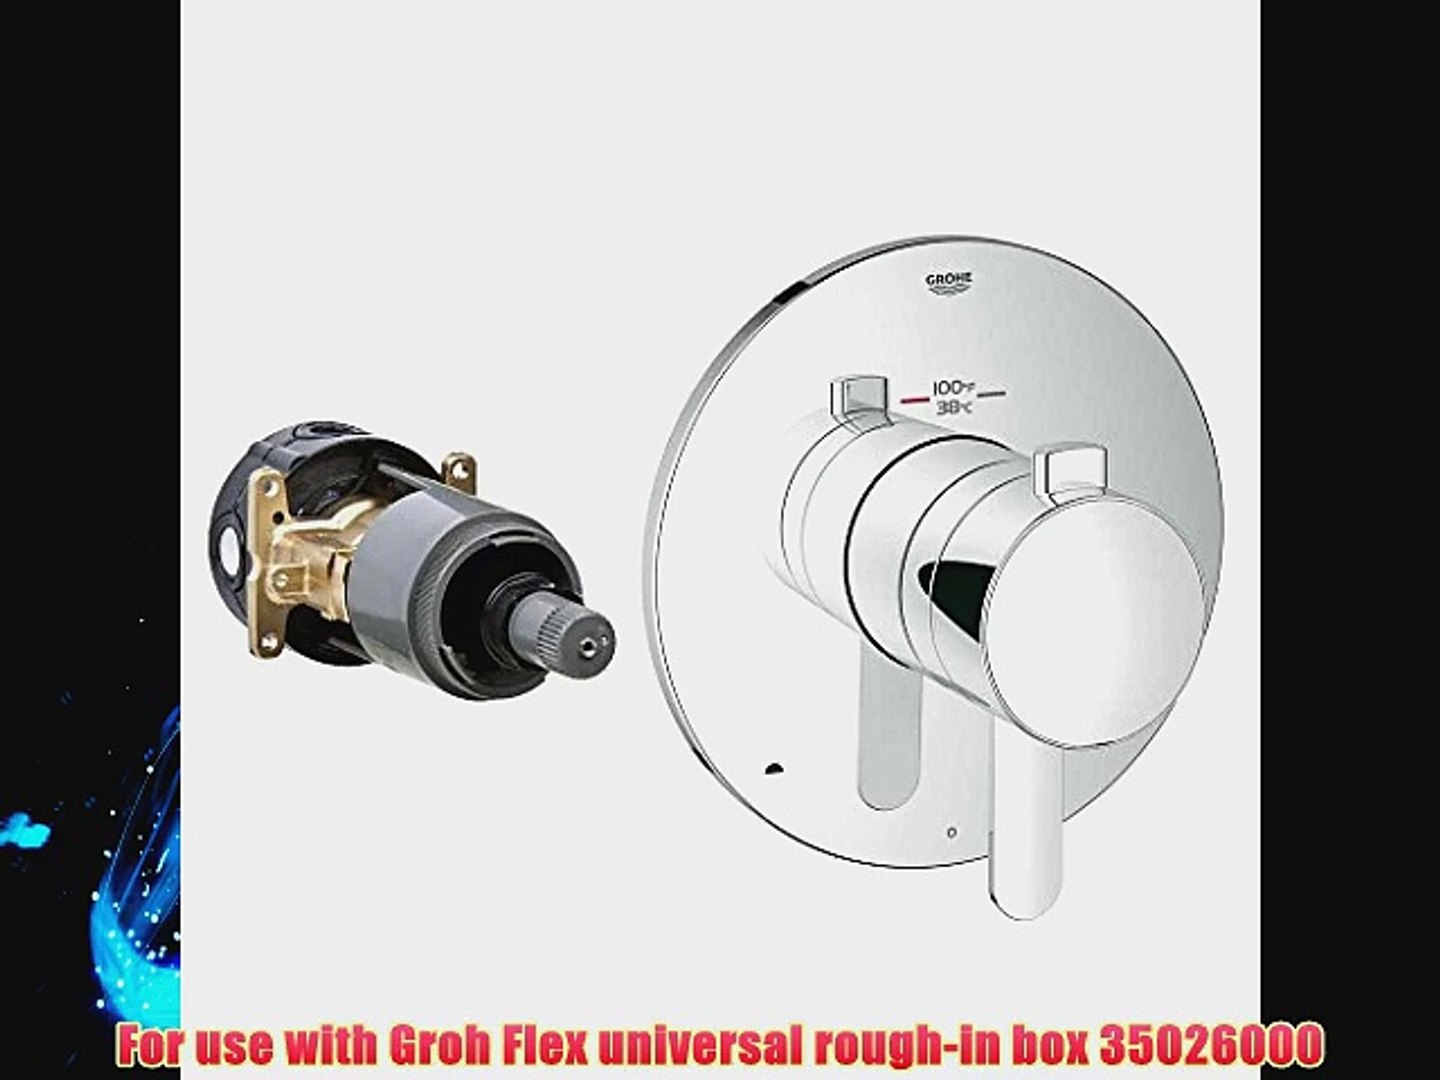 Grohe 19878000 Cosmopolitan 1-Handle GrohFlex Universal Rough-In Box Dual  Function Thermostatic - video dailymotion